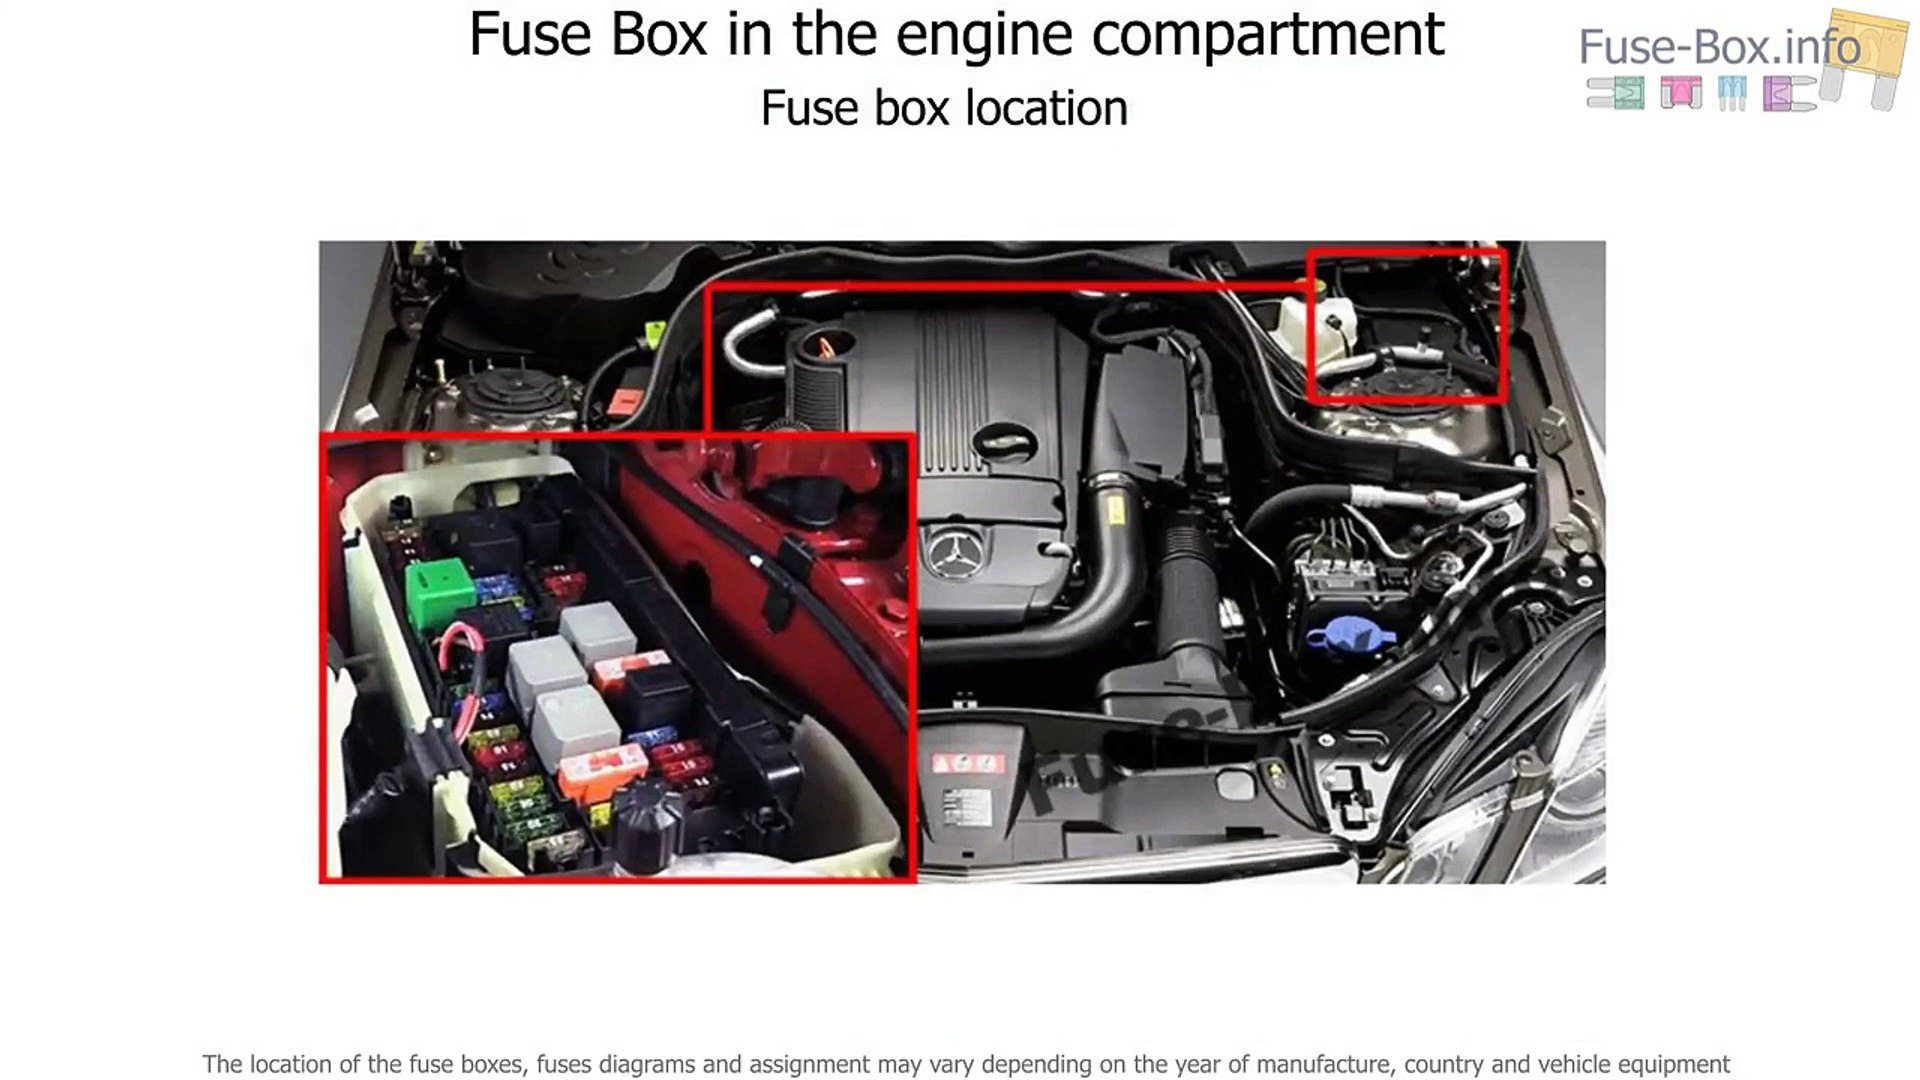 Mercede Benz Fuse Box Location